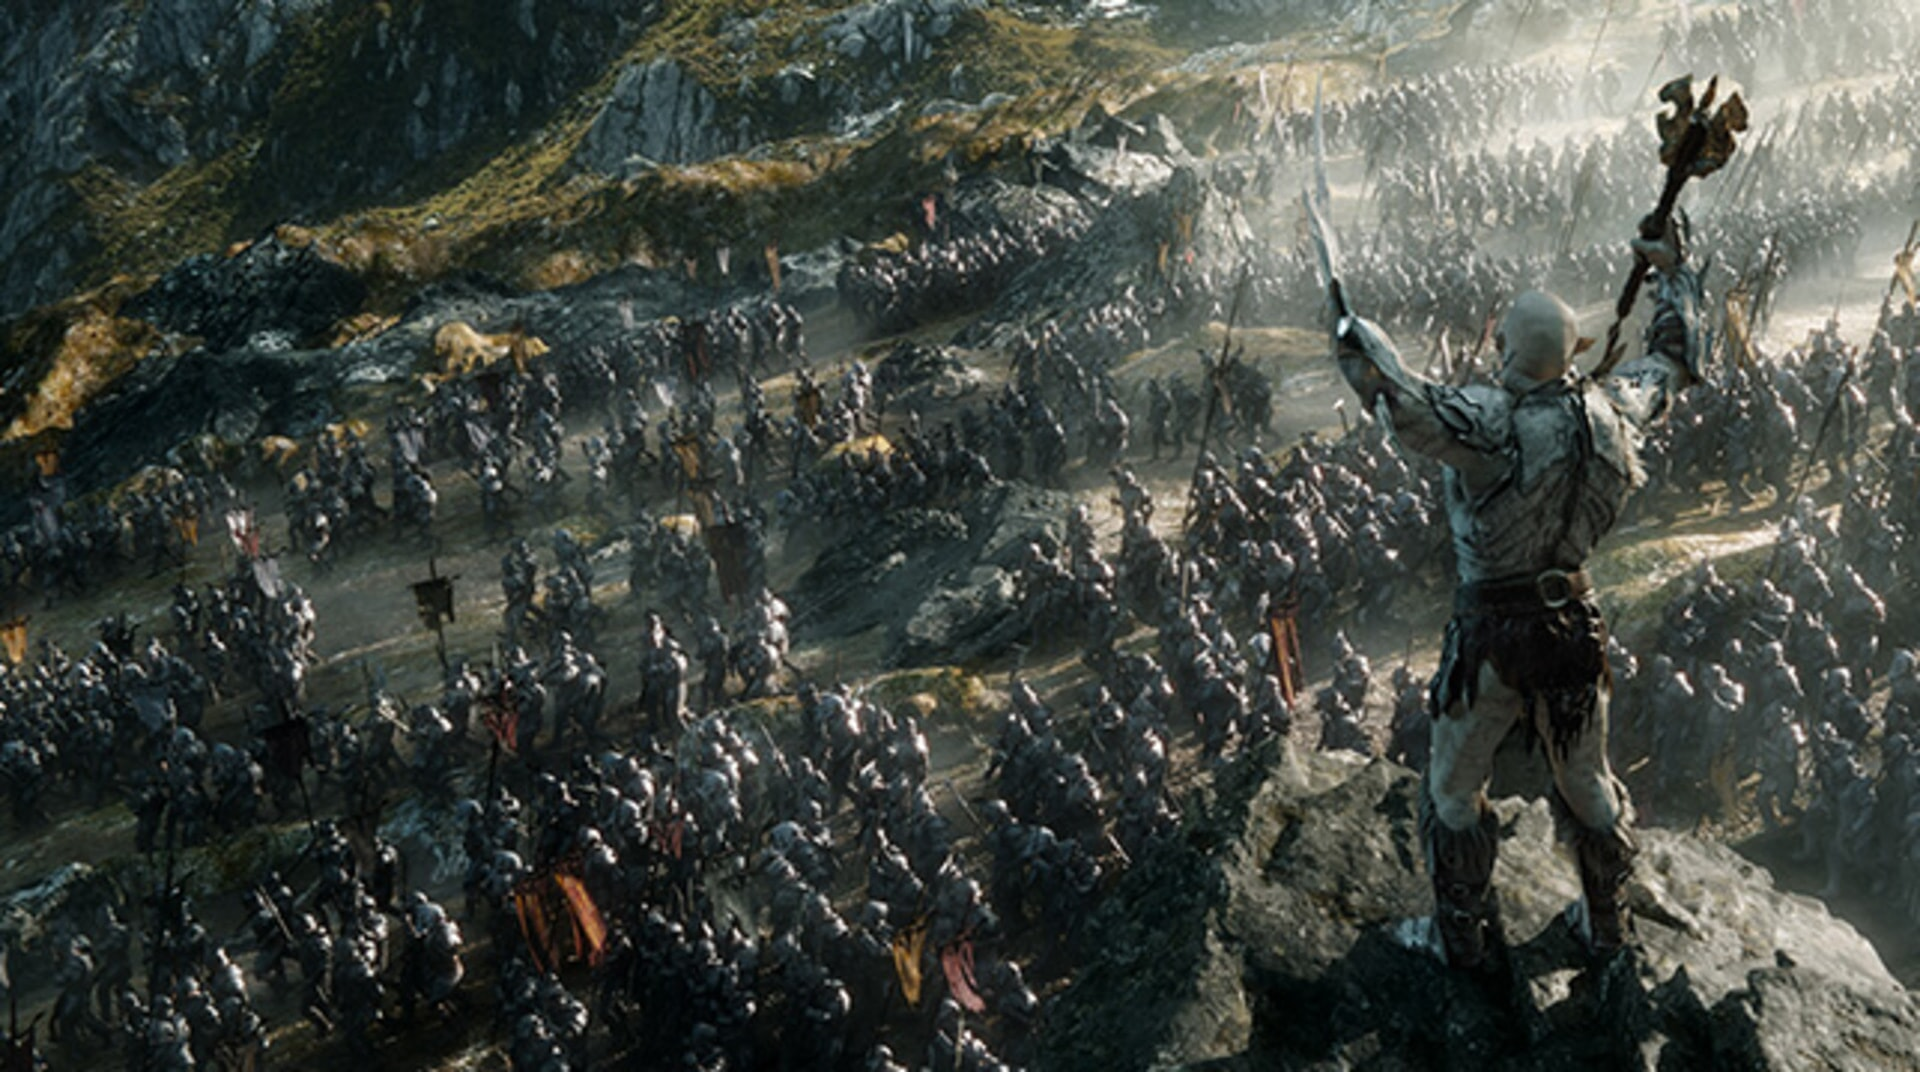 The Hobbit: The Battle of the Five Armies - Image 54